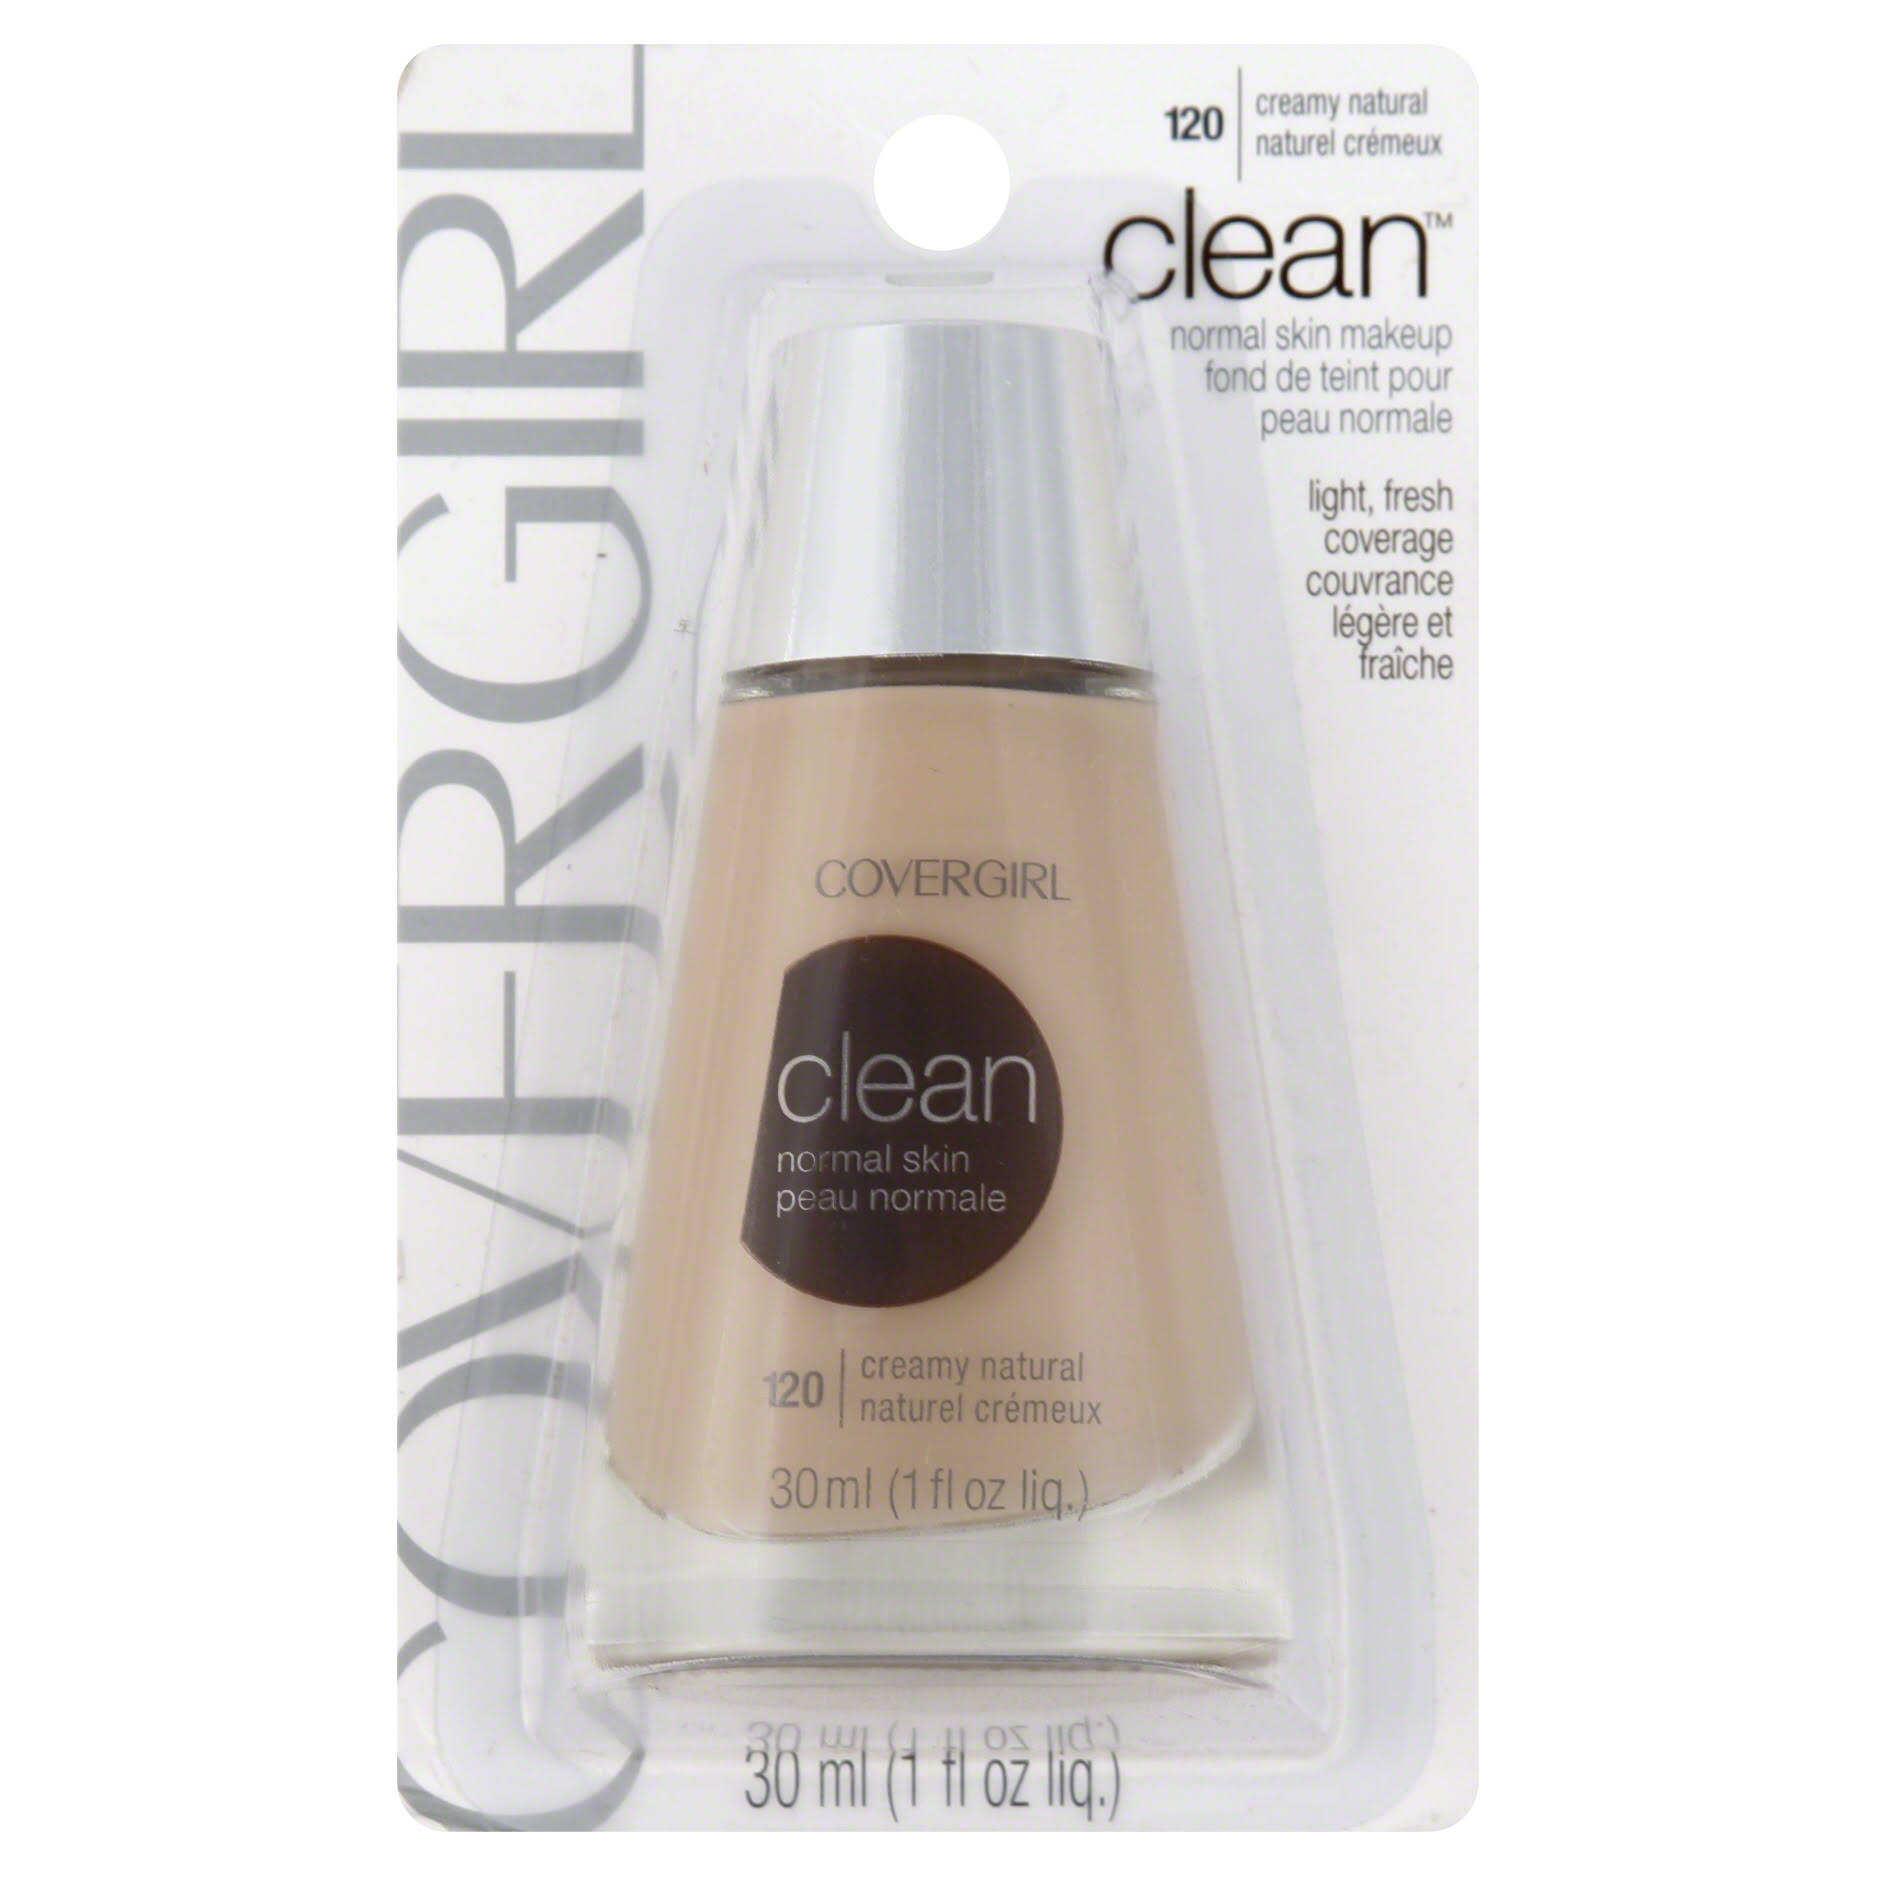 Covergirl Clean Liquid Makeup - Creamy Natural, 1oz